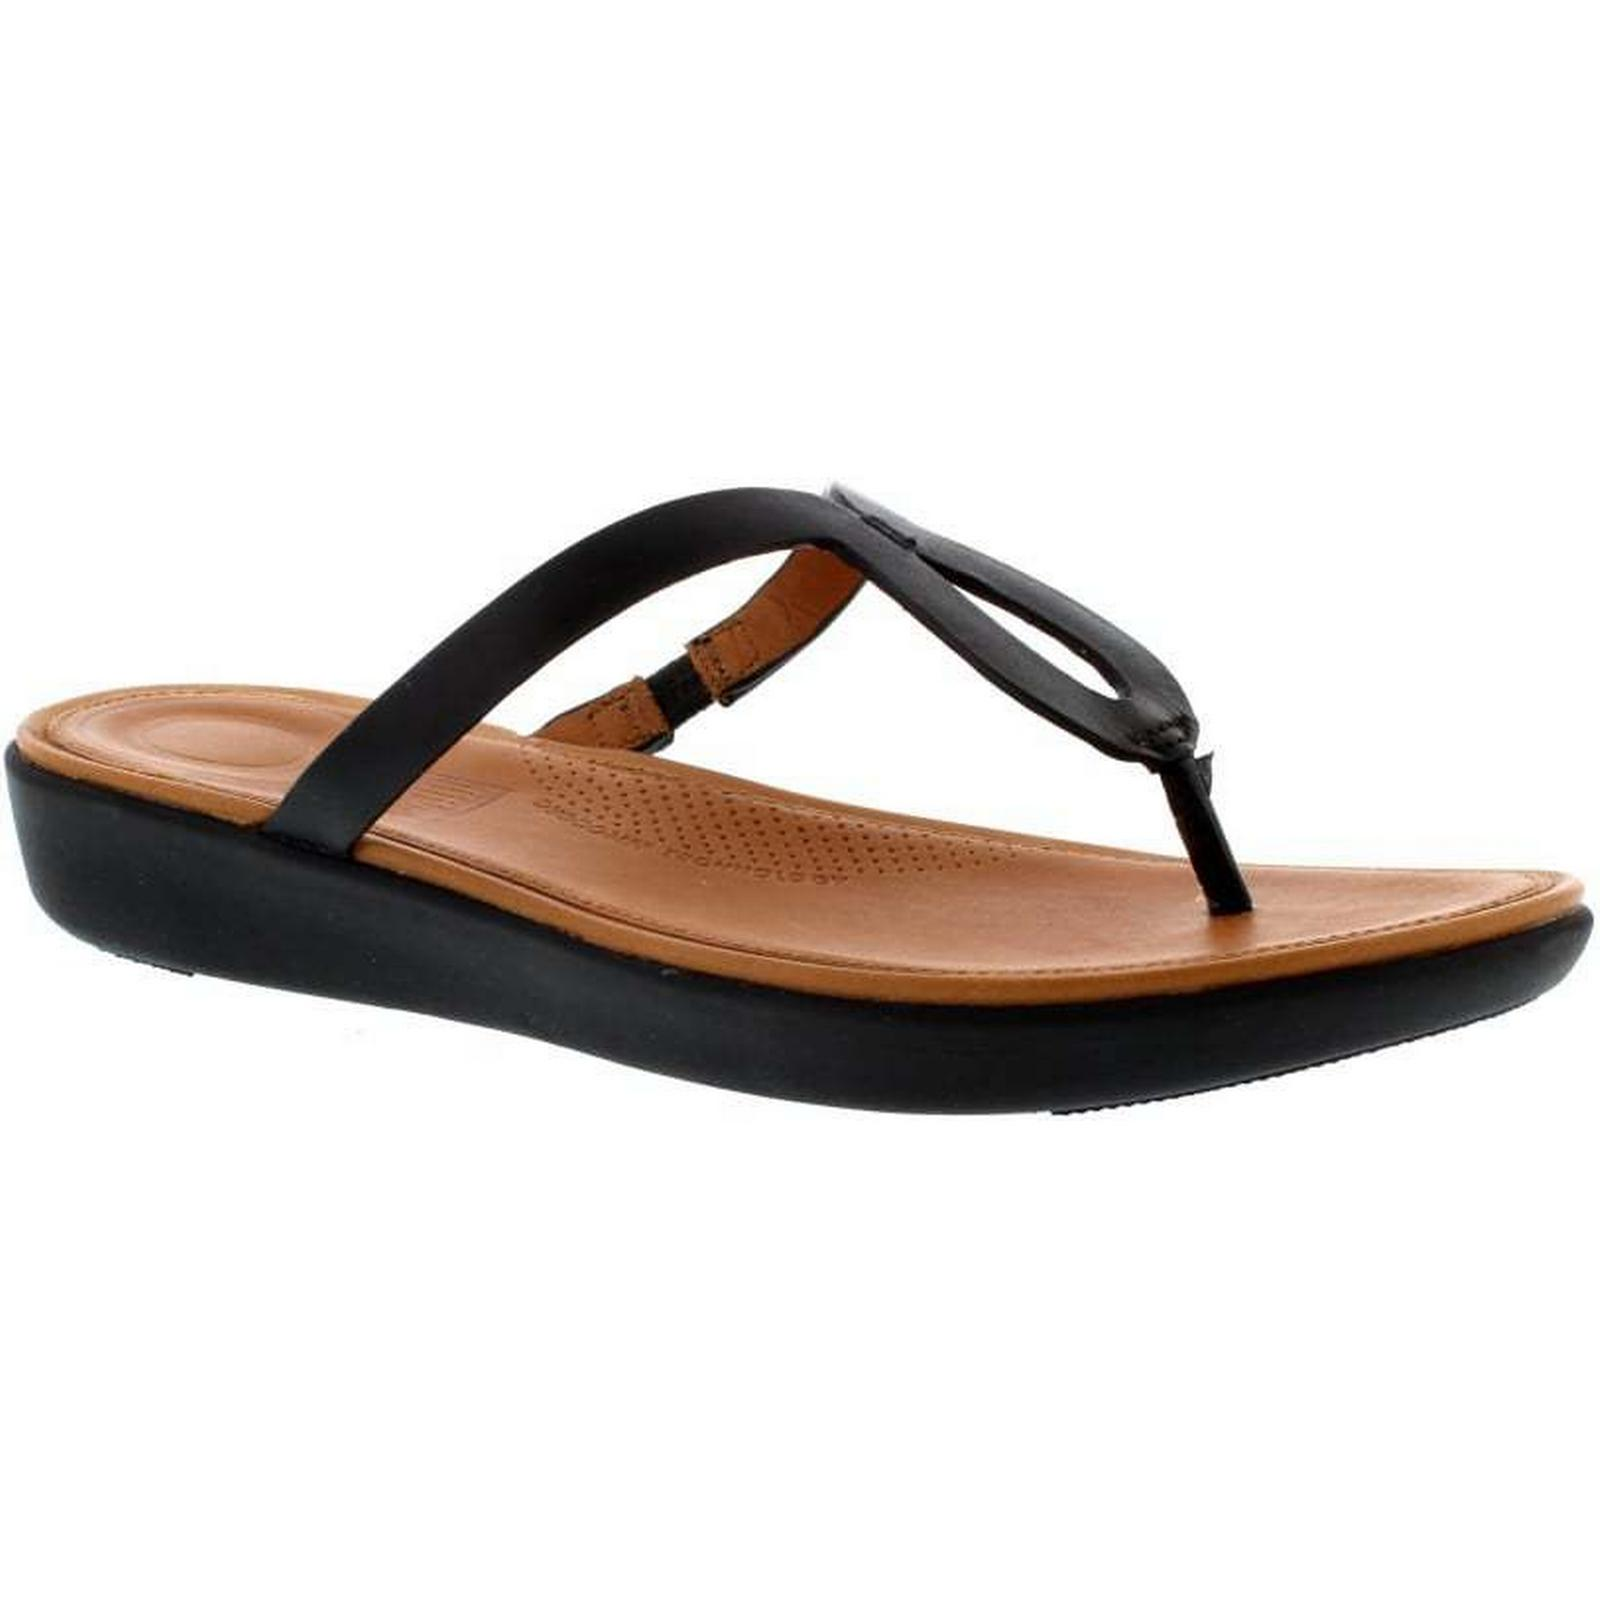 FitFlop™ - FitFlop Strata Toe Thong - FitFlop™ Black Size: 6 UK 72342c